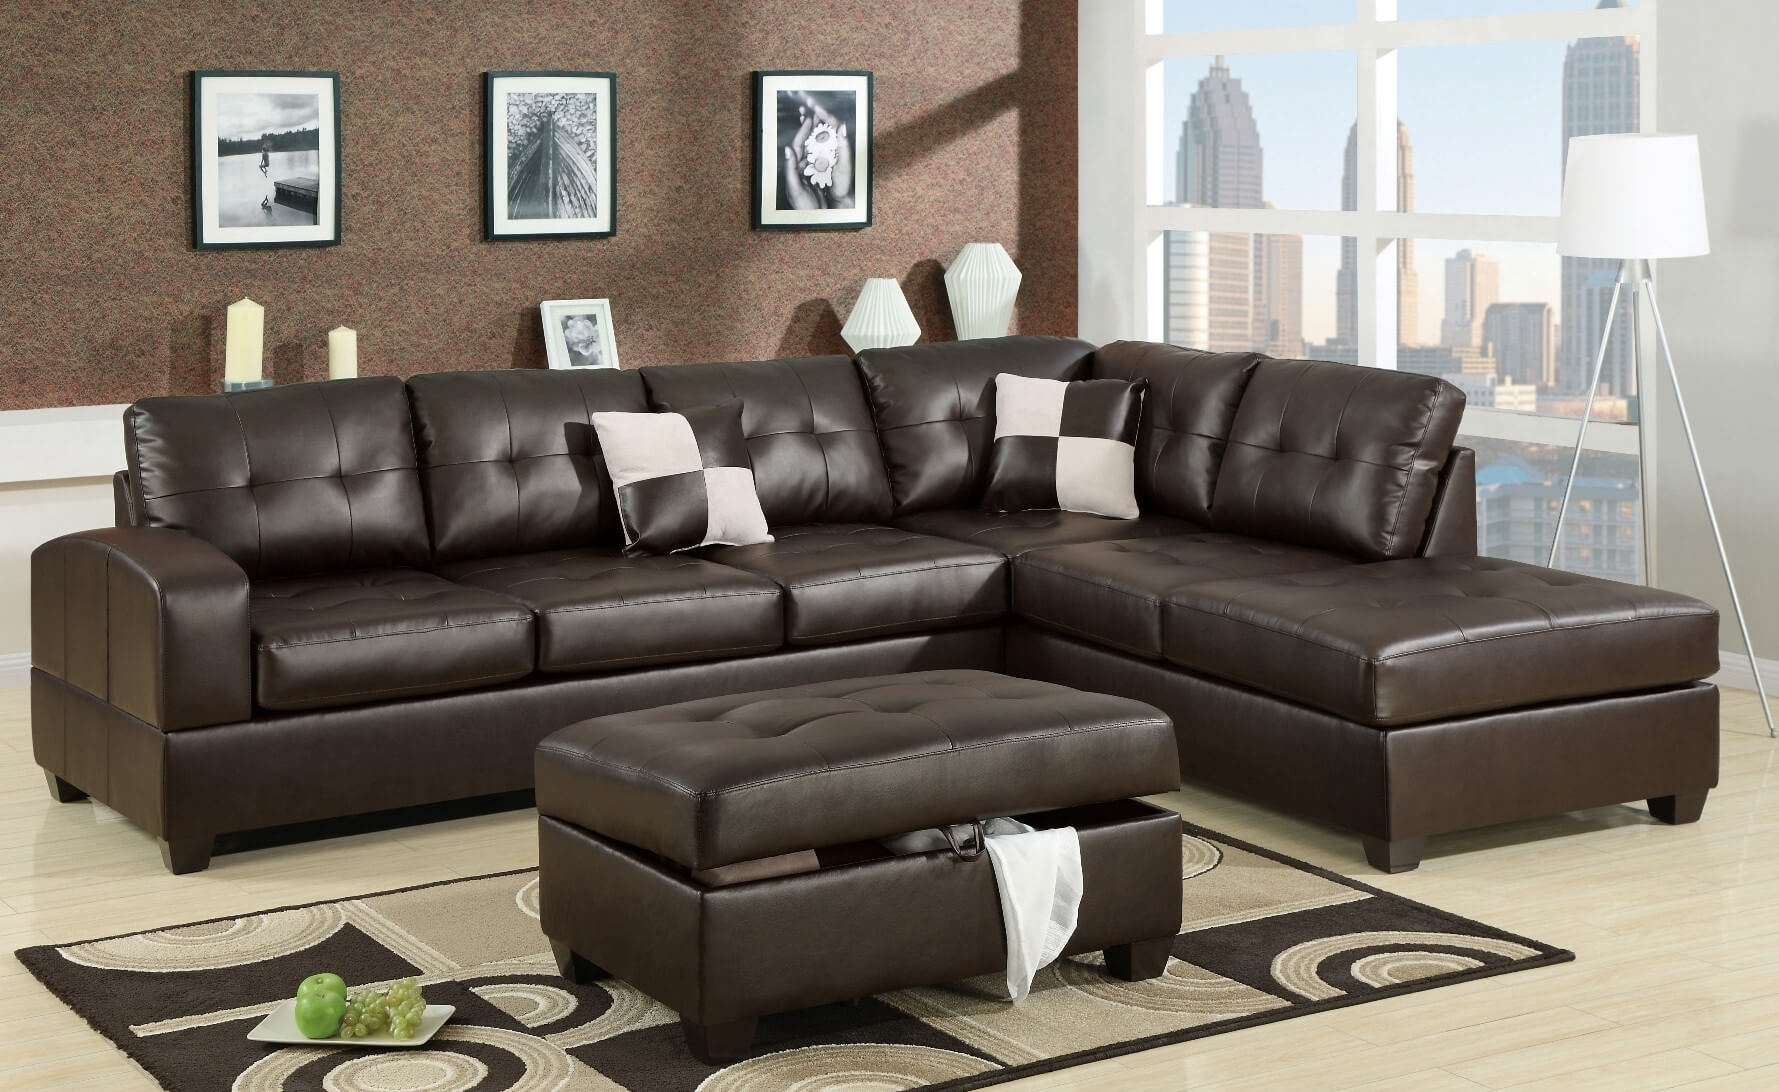 Featured Image of Tampa Sectional Sofas